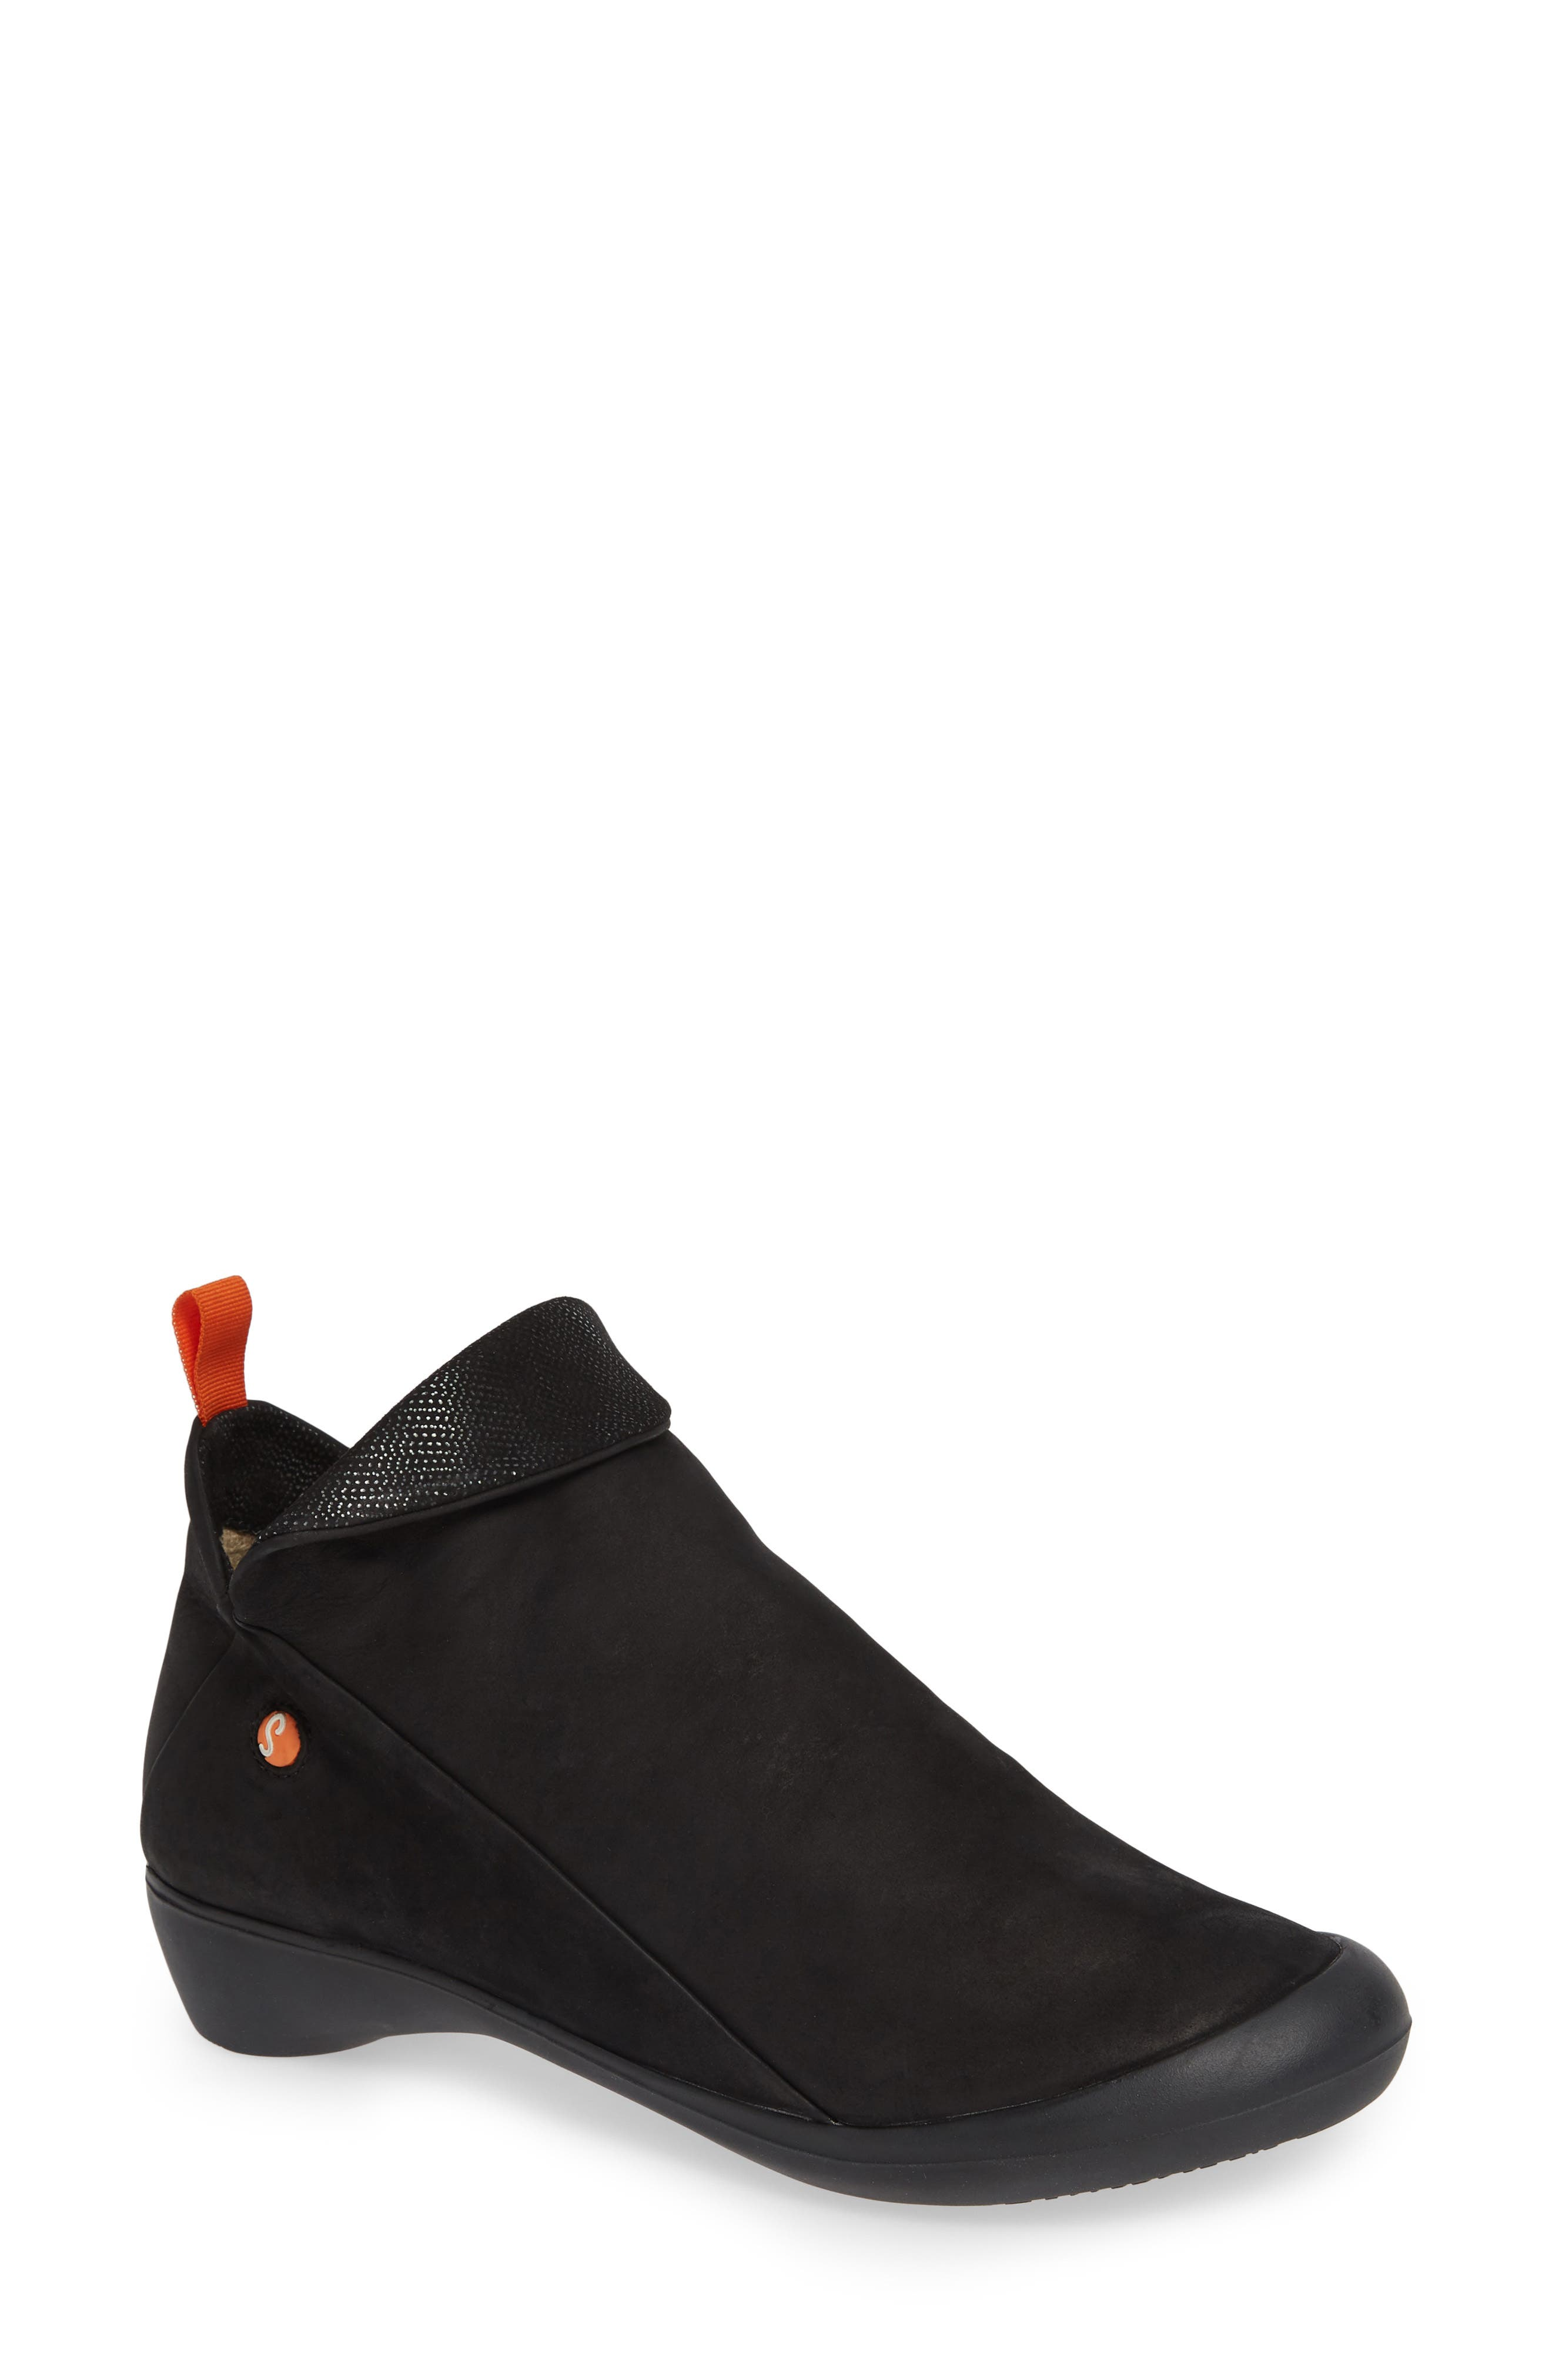 Softinos By Fly London Farah Bootie - Black